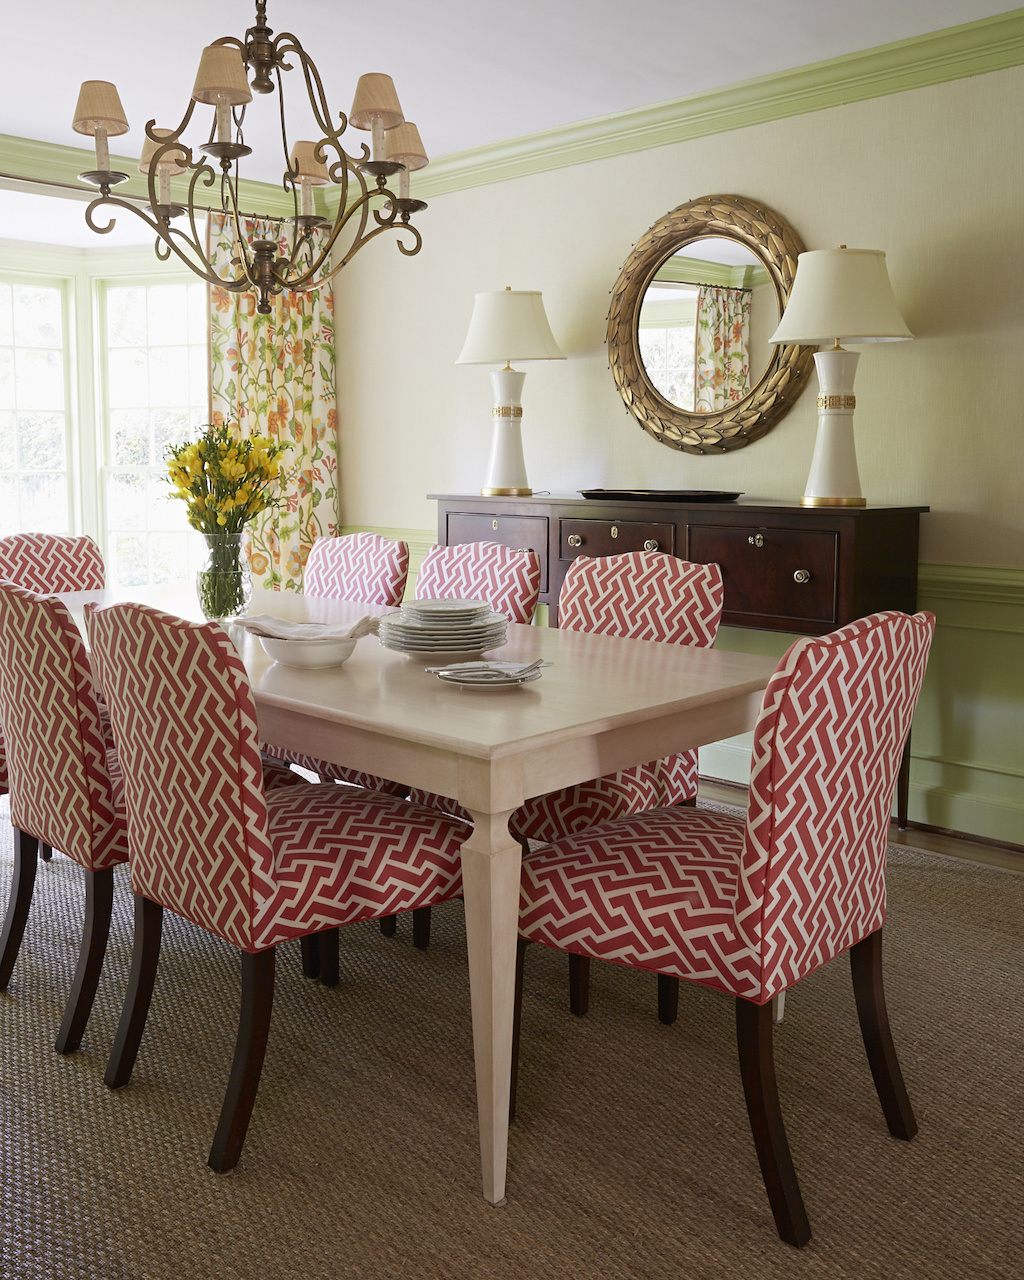 A sideboard by Kittinger and lamps from Mrs. Howardcomplement the red Quadrille fabric on dining room chairs.